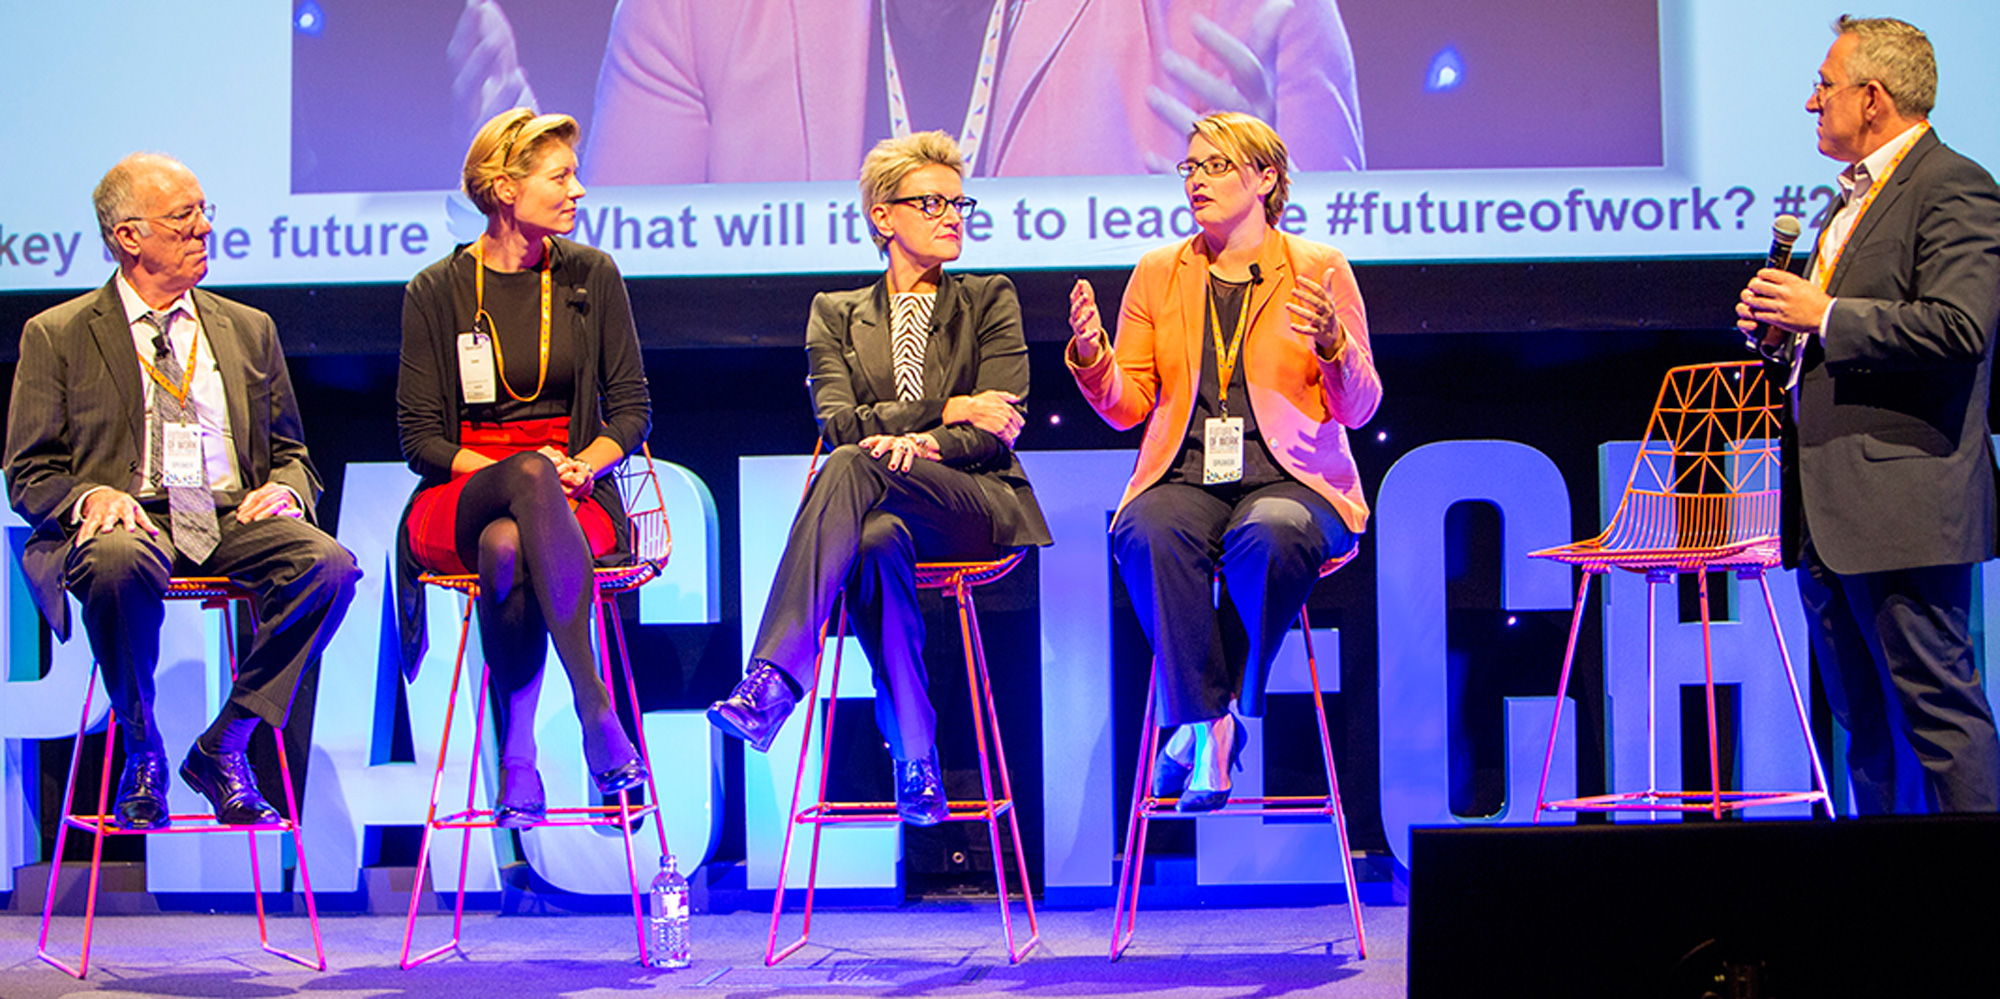 What will it take to lead the future of work?